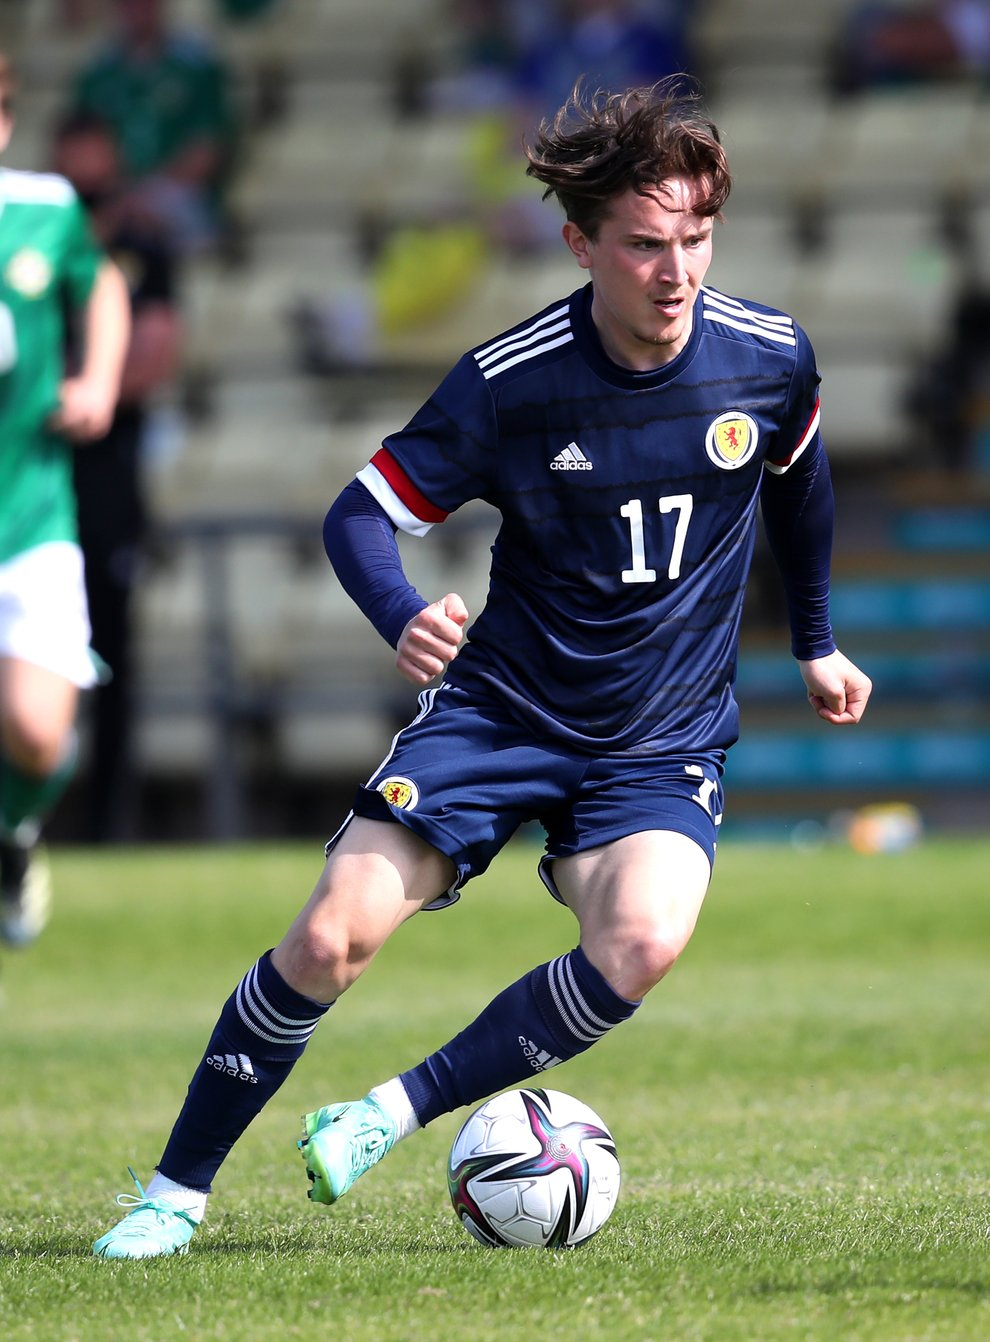 Logan Chalmers in action for Scotland's youth team